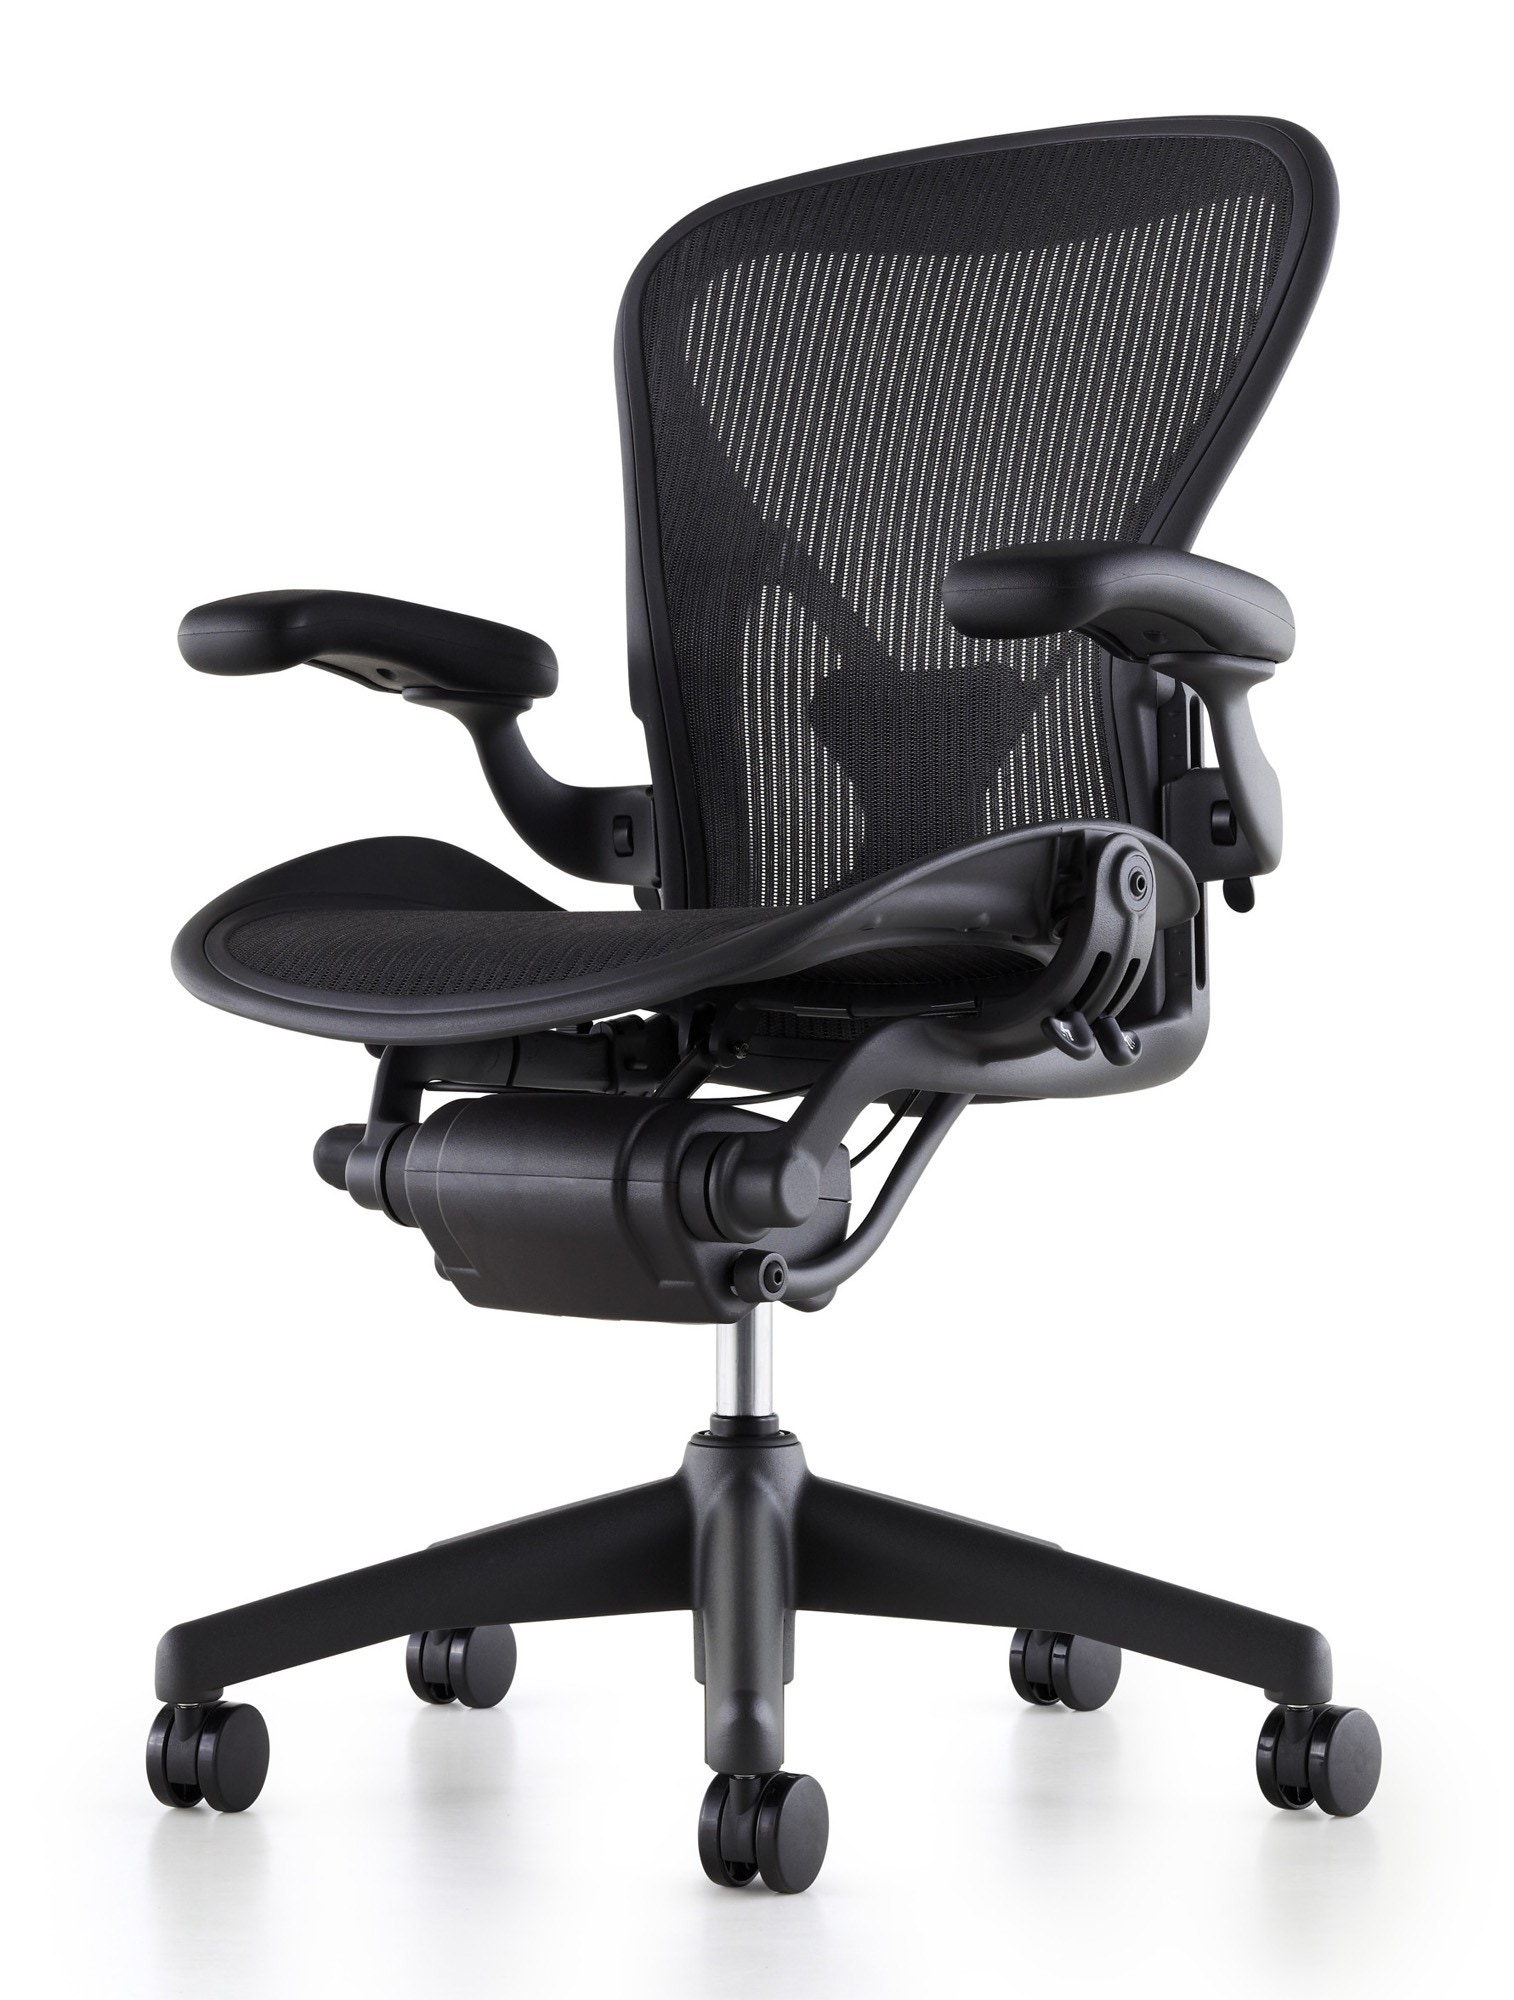 ideas dimensions dots highly owned aeron four chair things manual instachair miller beautiful chart and us pre repair herman classy design the caper size chairs copy about